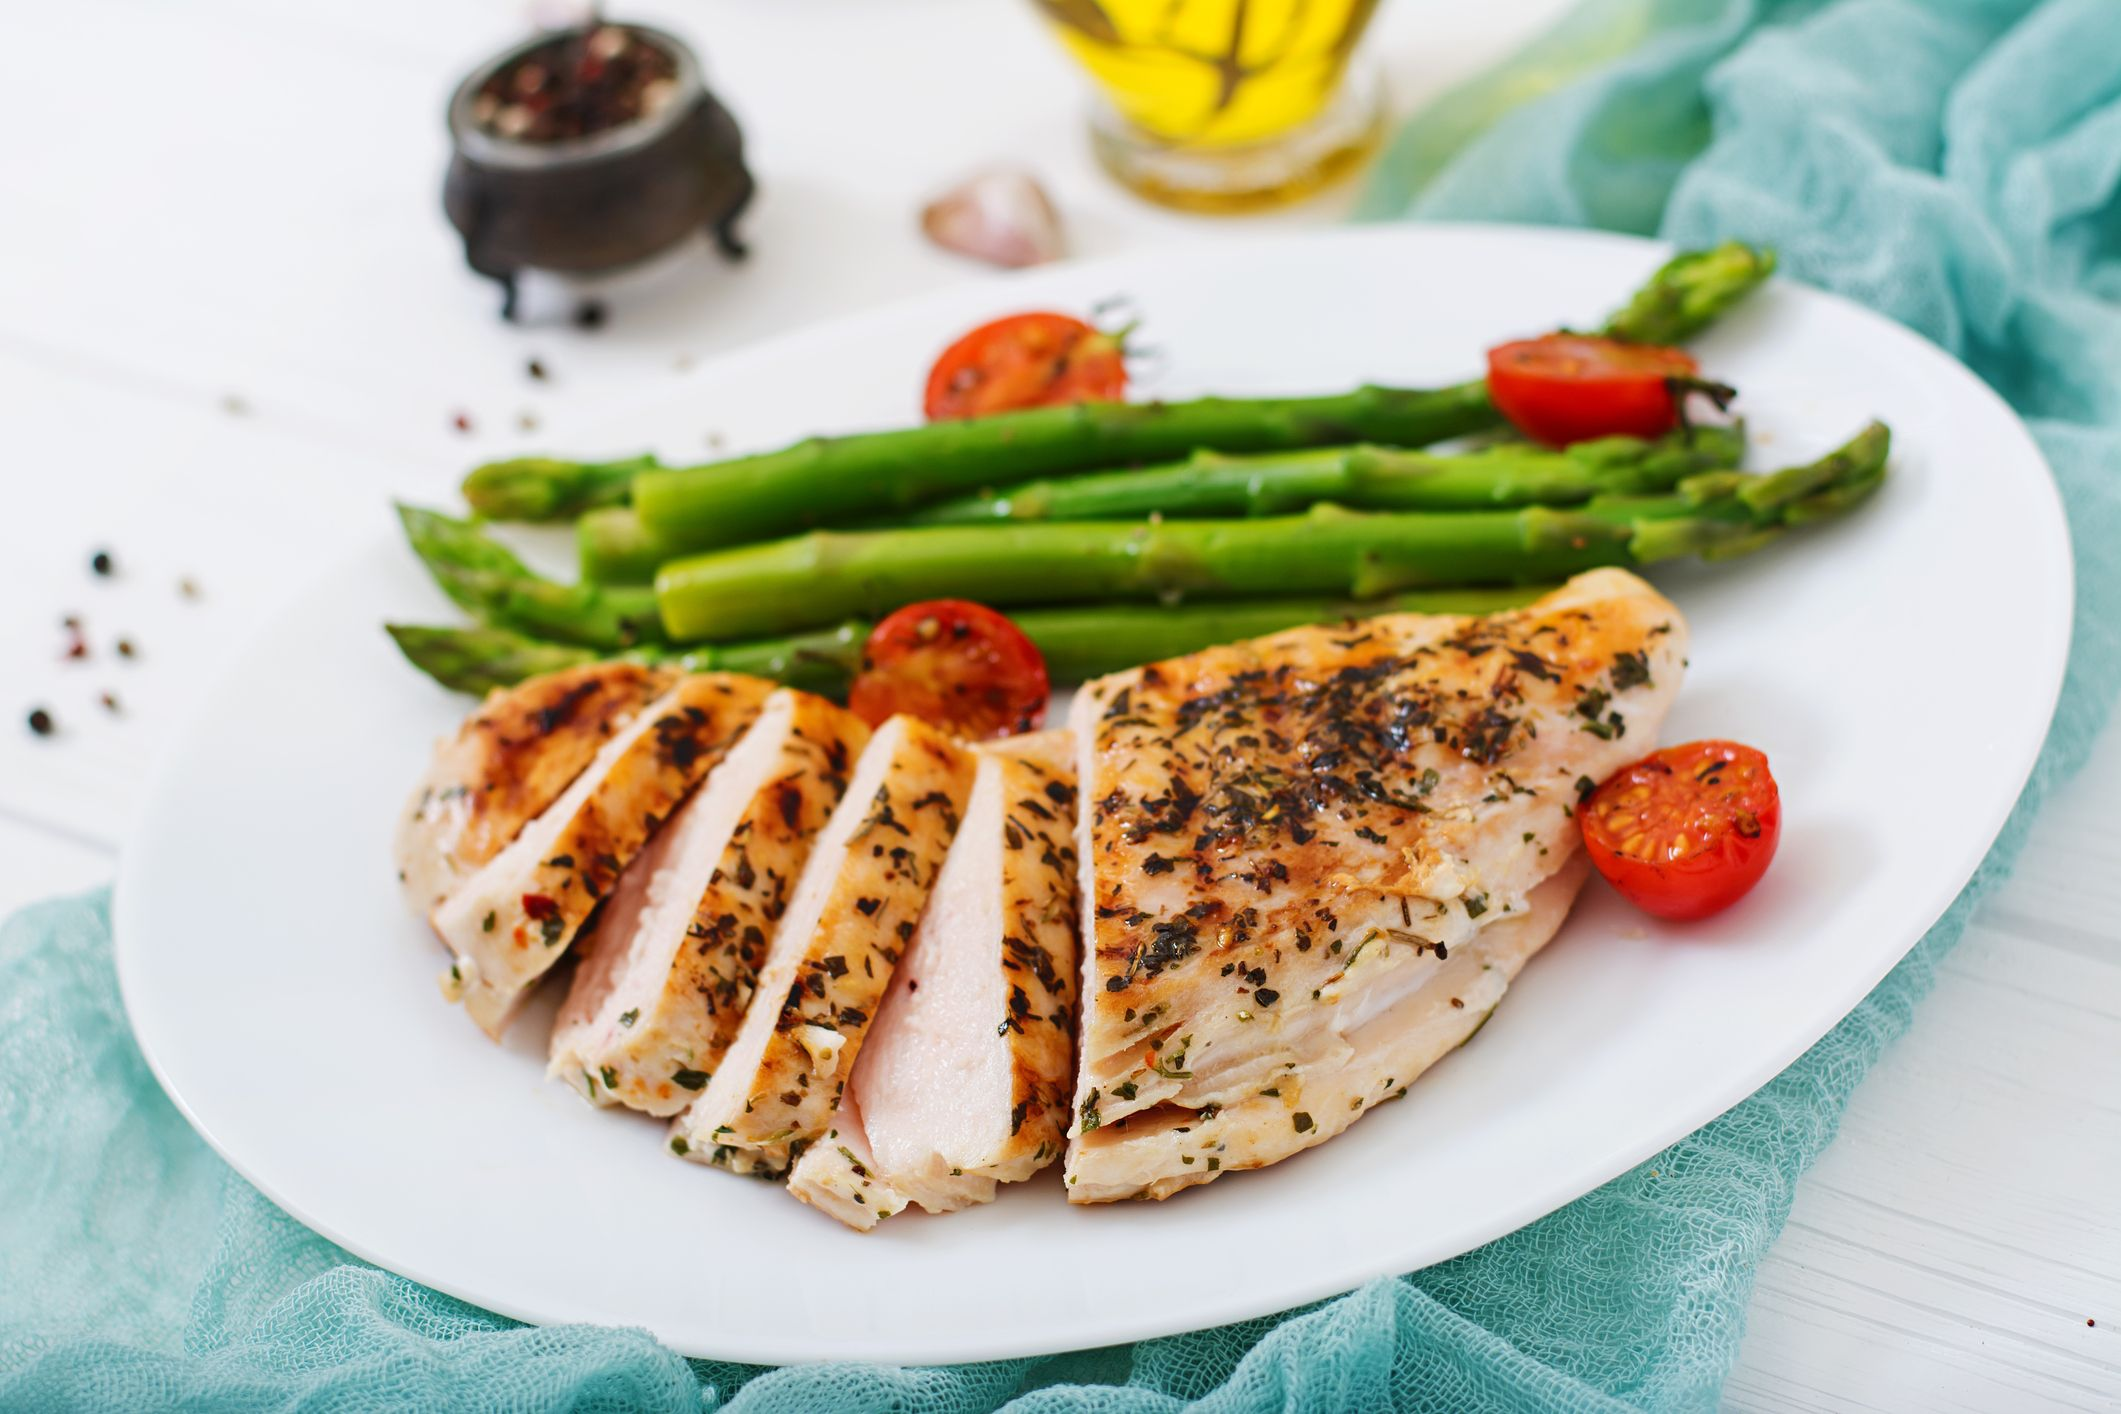 Chicken Breast Nutrition Facts Nutritional Information For Grilled